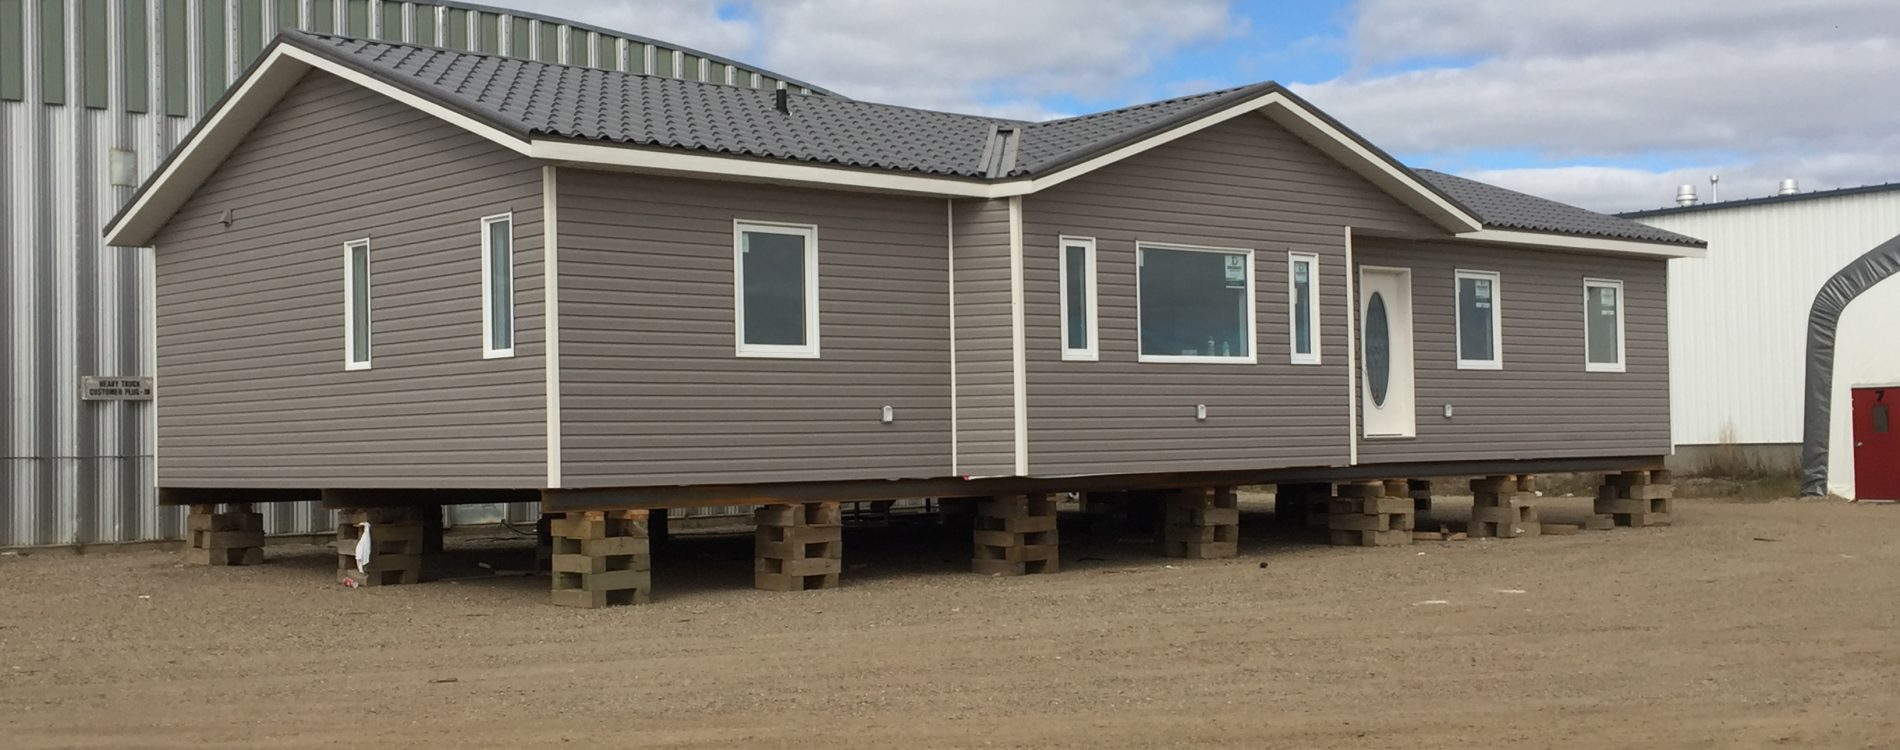 MISB   We Manufacture High Quality, Code Compliant Relocatable Modular Structures.